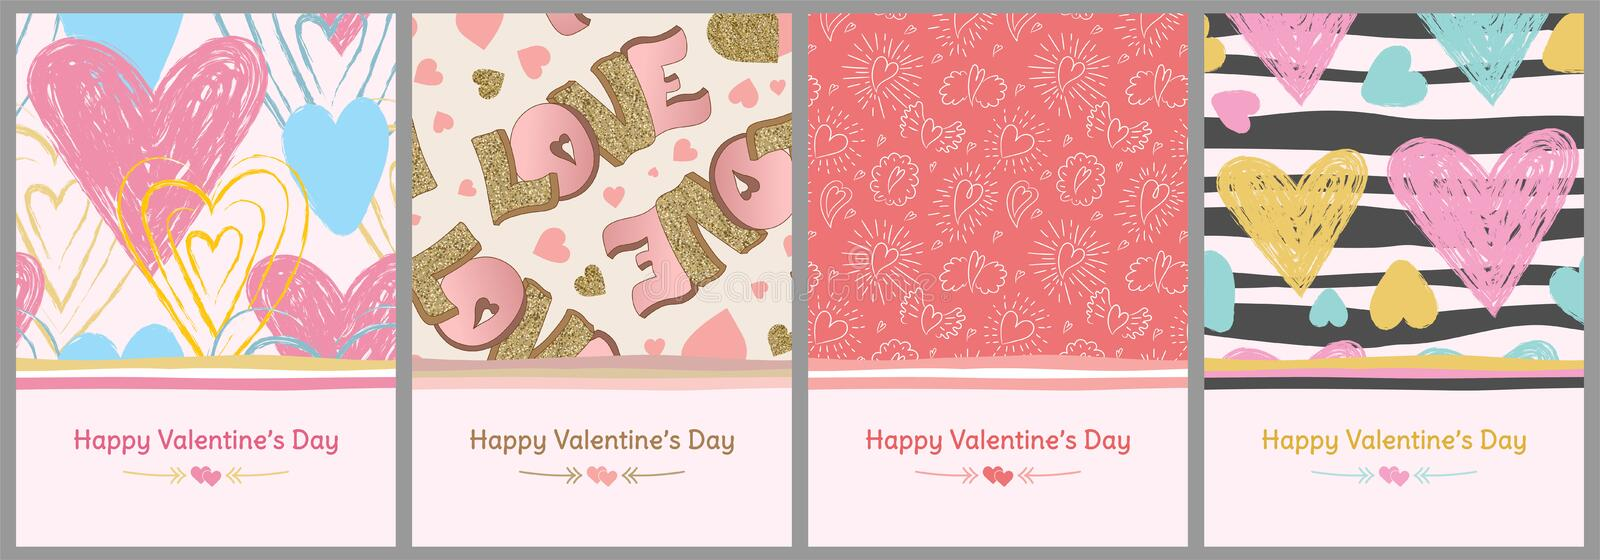 Happy Valentine`s Day. Greeting card set. Love. Gold, blue and pink colors. Hand drawn hearts. Design for February 14.  stock illustration